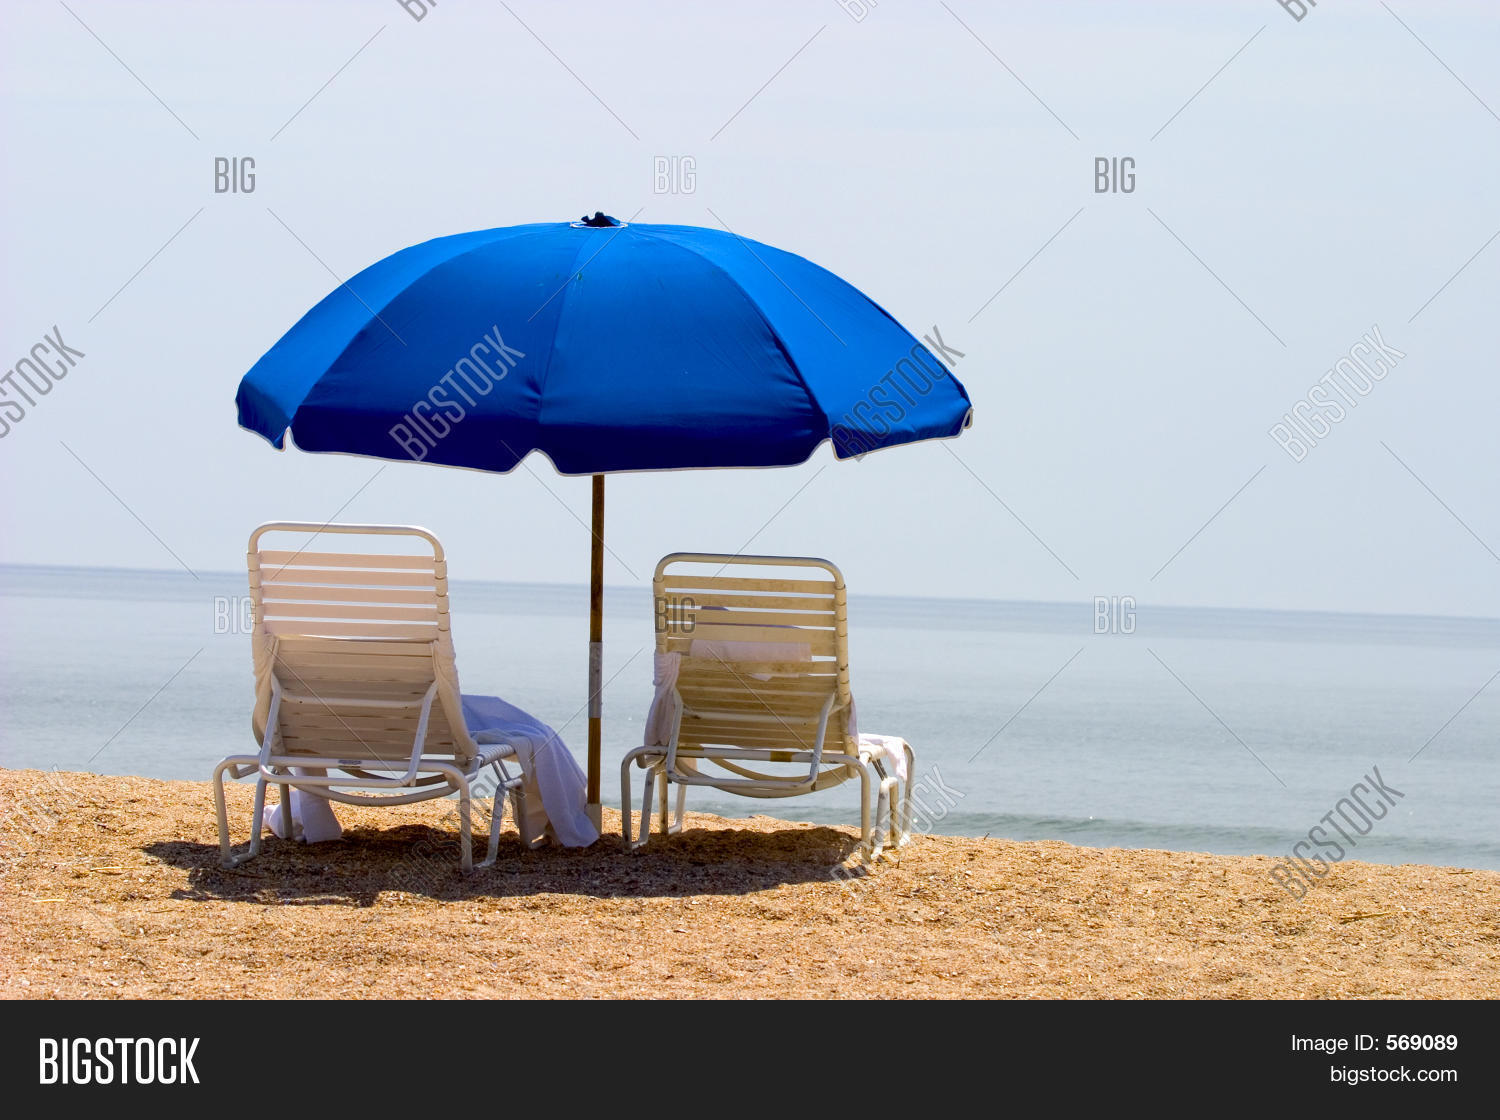 Beach Chairs With Umbrella Two Beach Chairs Image Photo Free Trial Bigstock